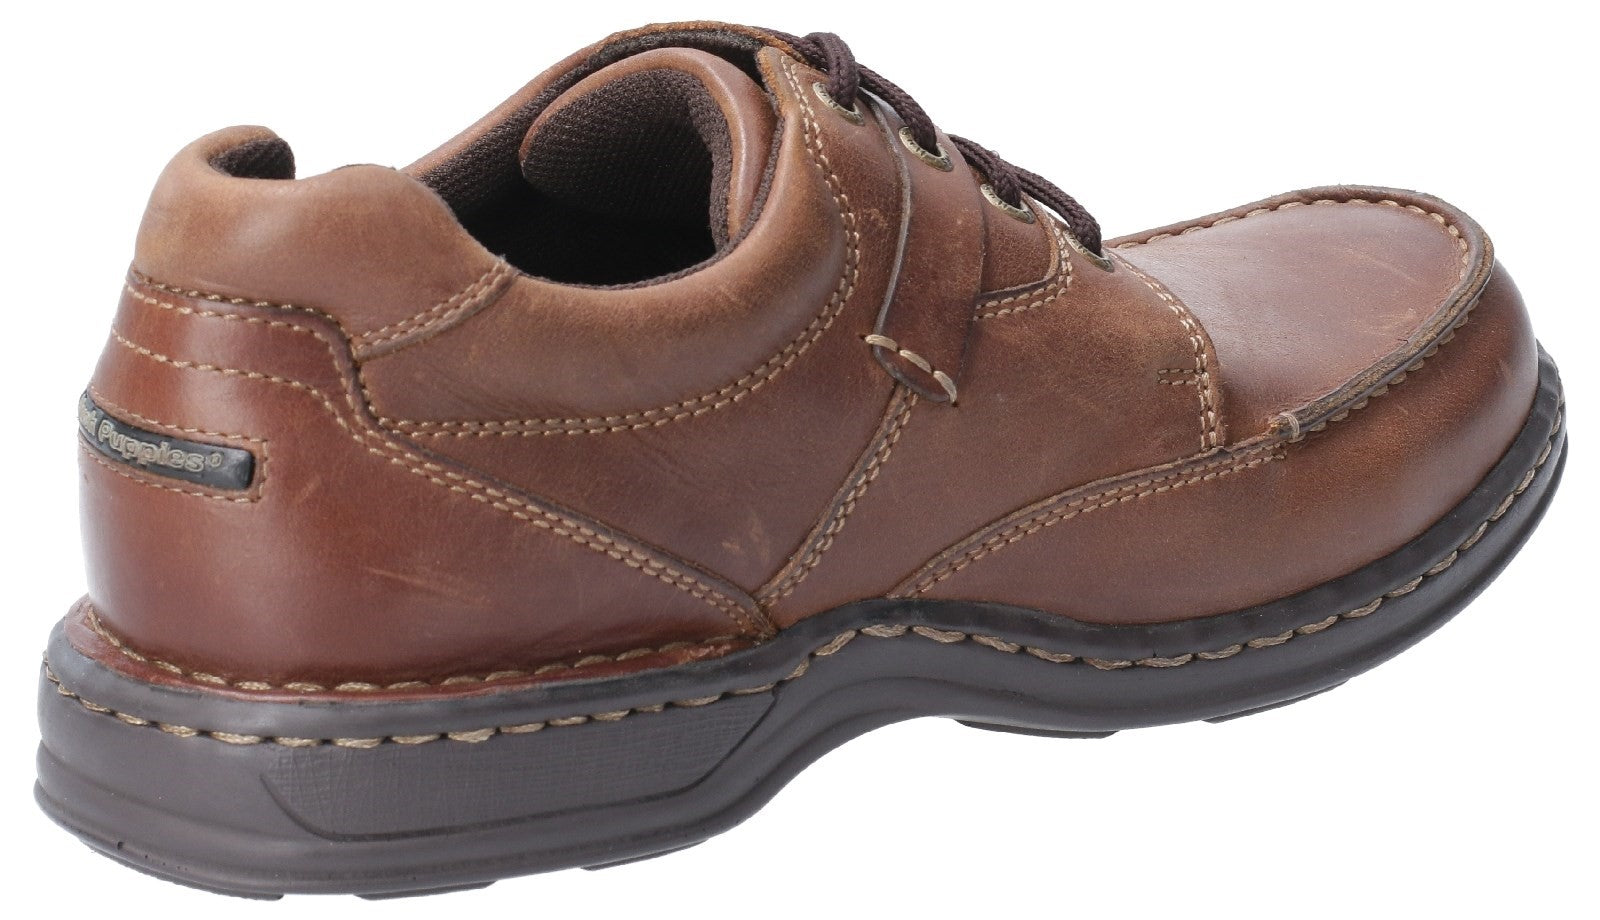 BROWN RANDALL II LACE UP SHOE